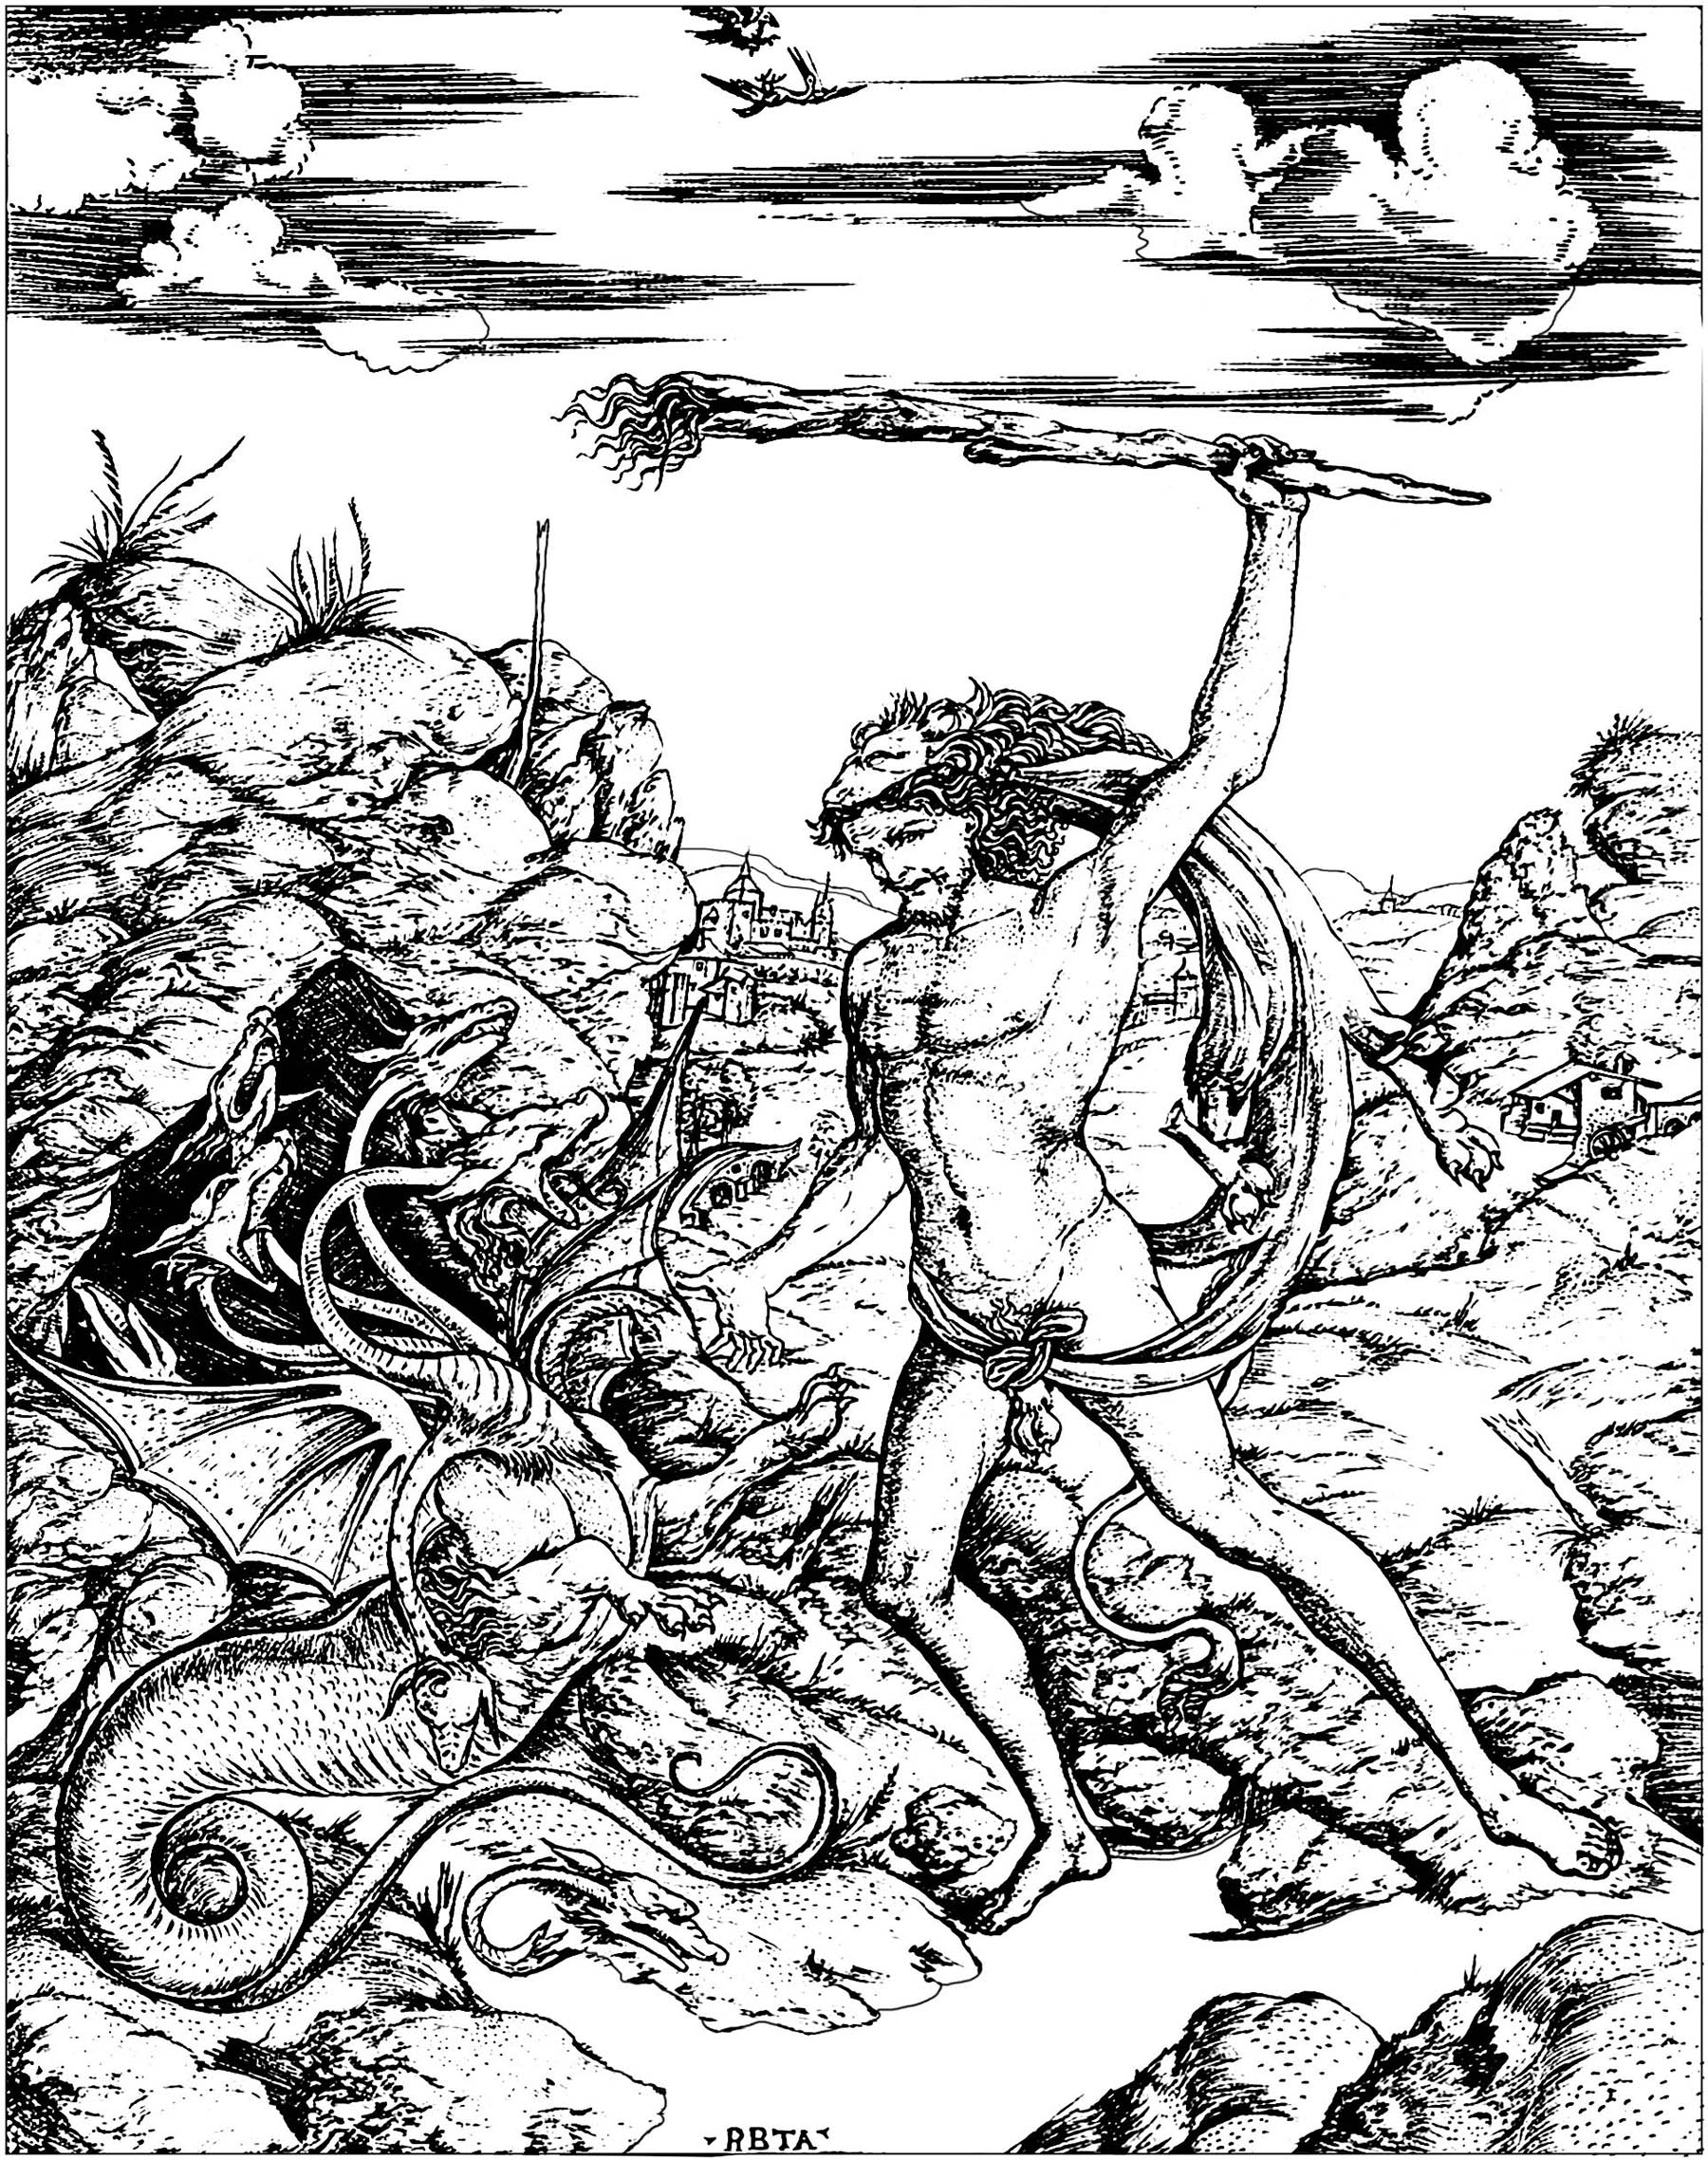 Hercules and the Hydra (The labor of Hercules), 1500–1520 engraving by Antonio Pollaiuolo (Italy)